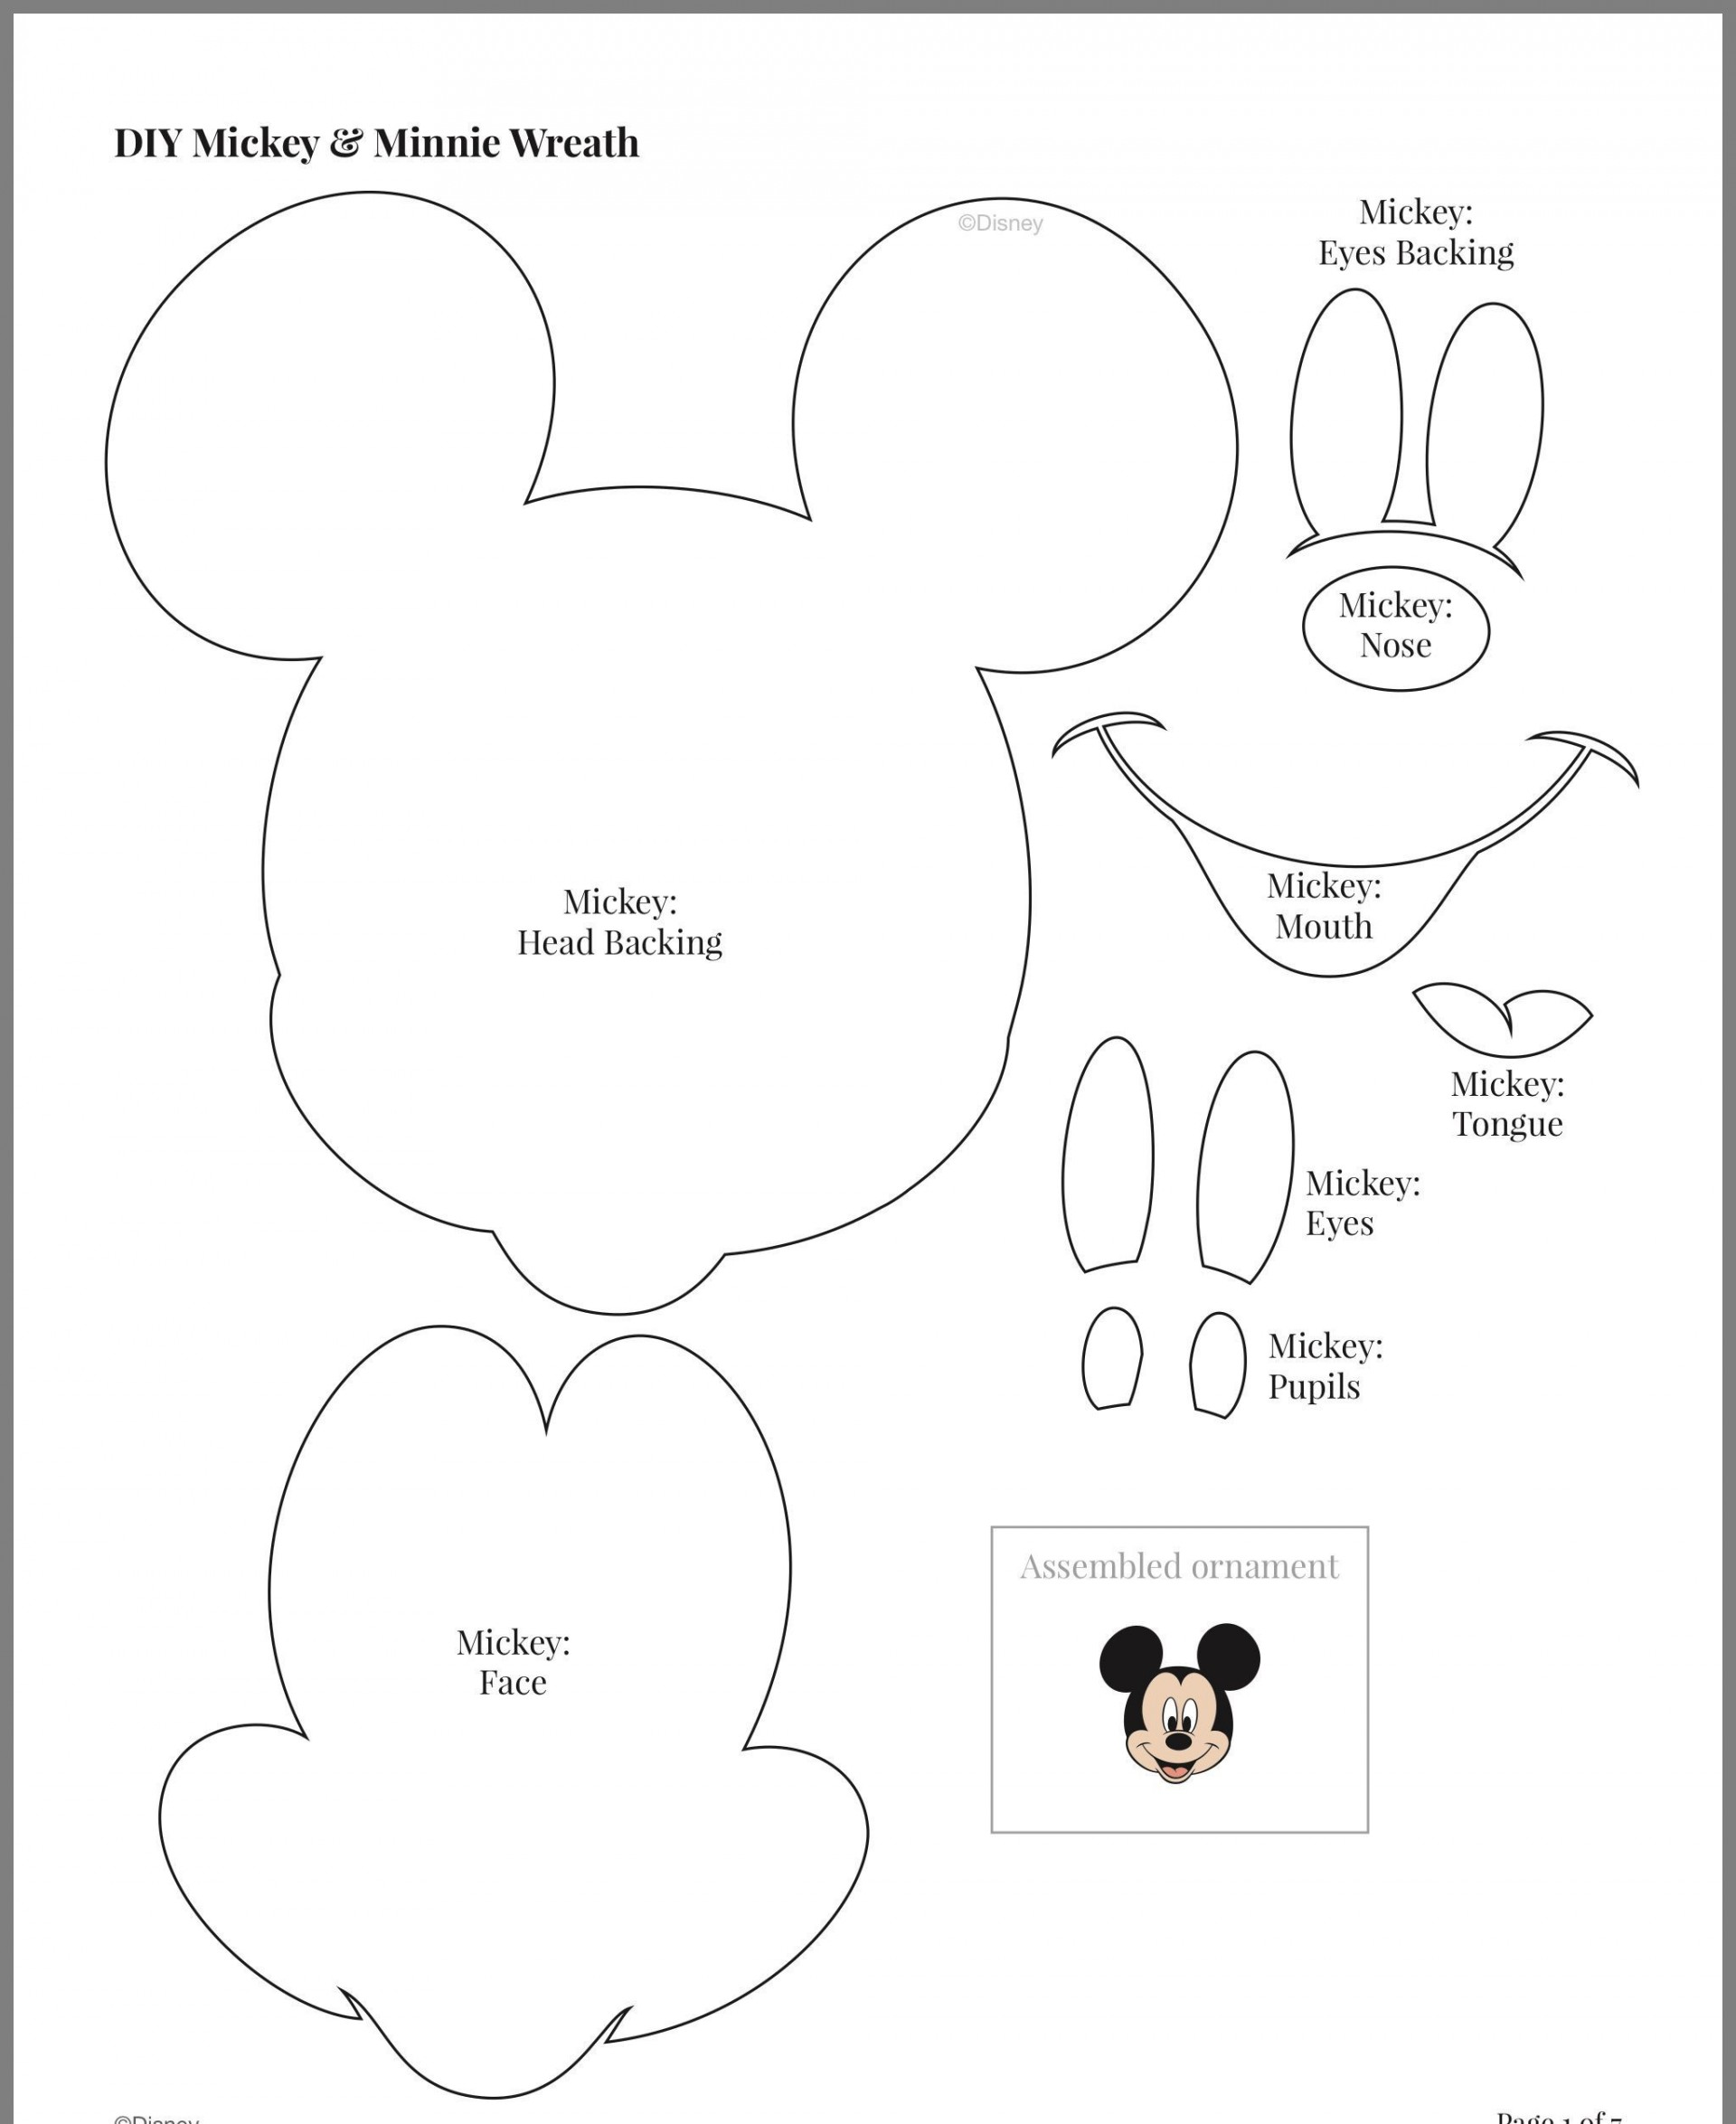 005 Archaicawful Mickey Mouse Face Cake Template Printable High Definition 1920